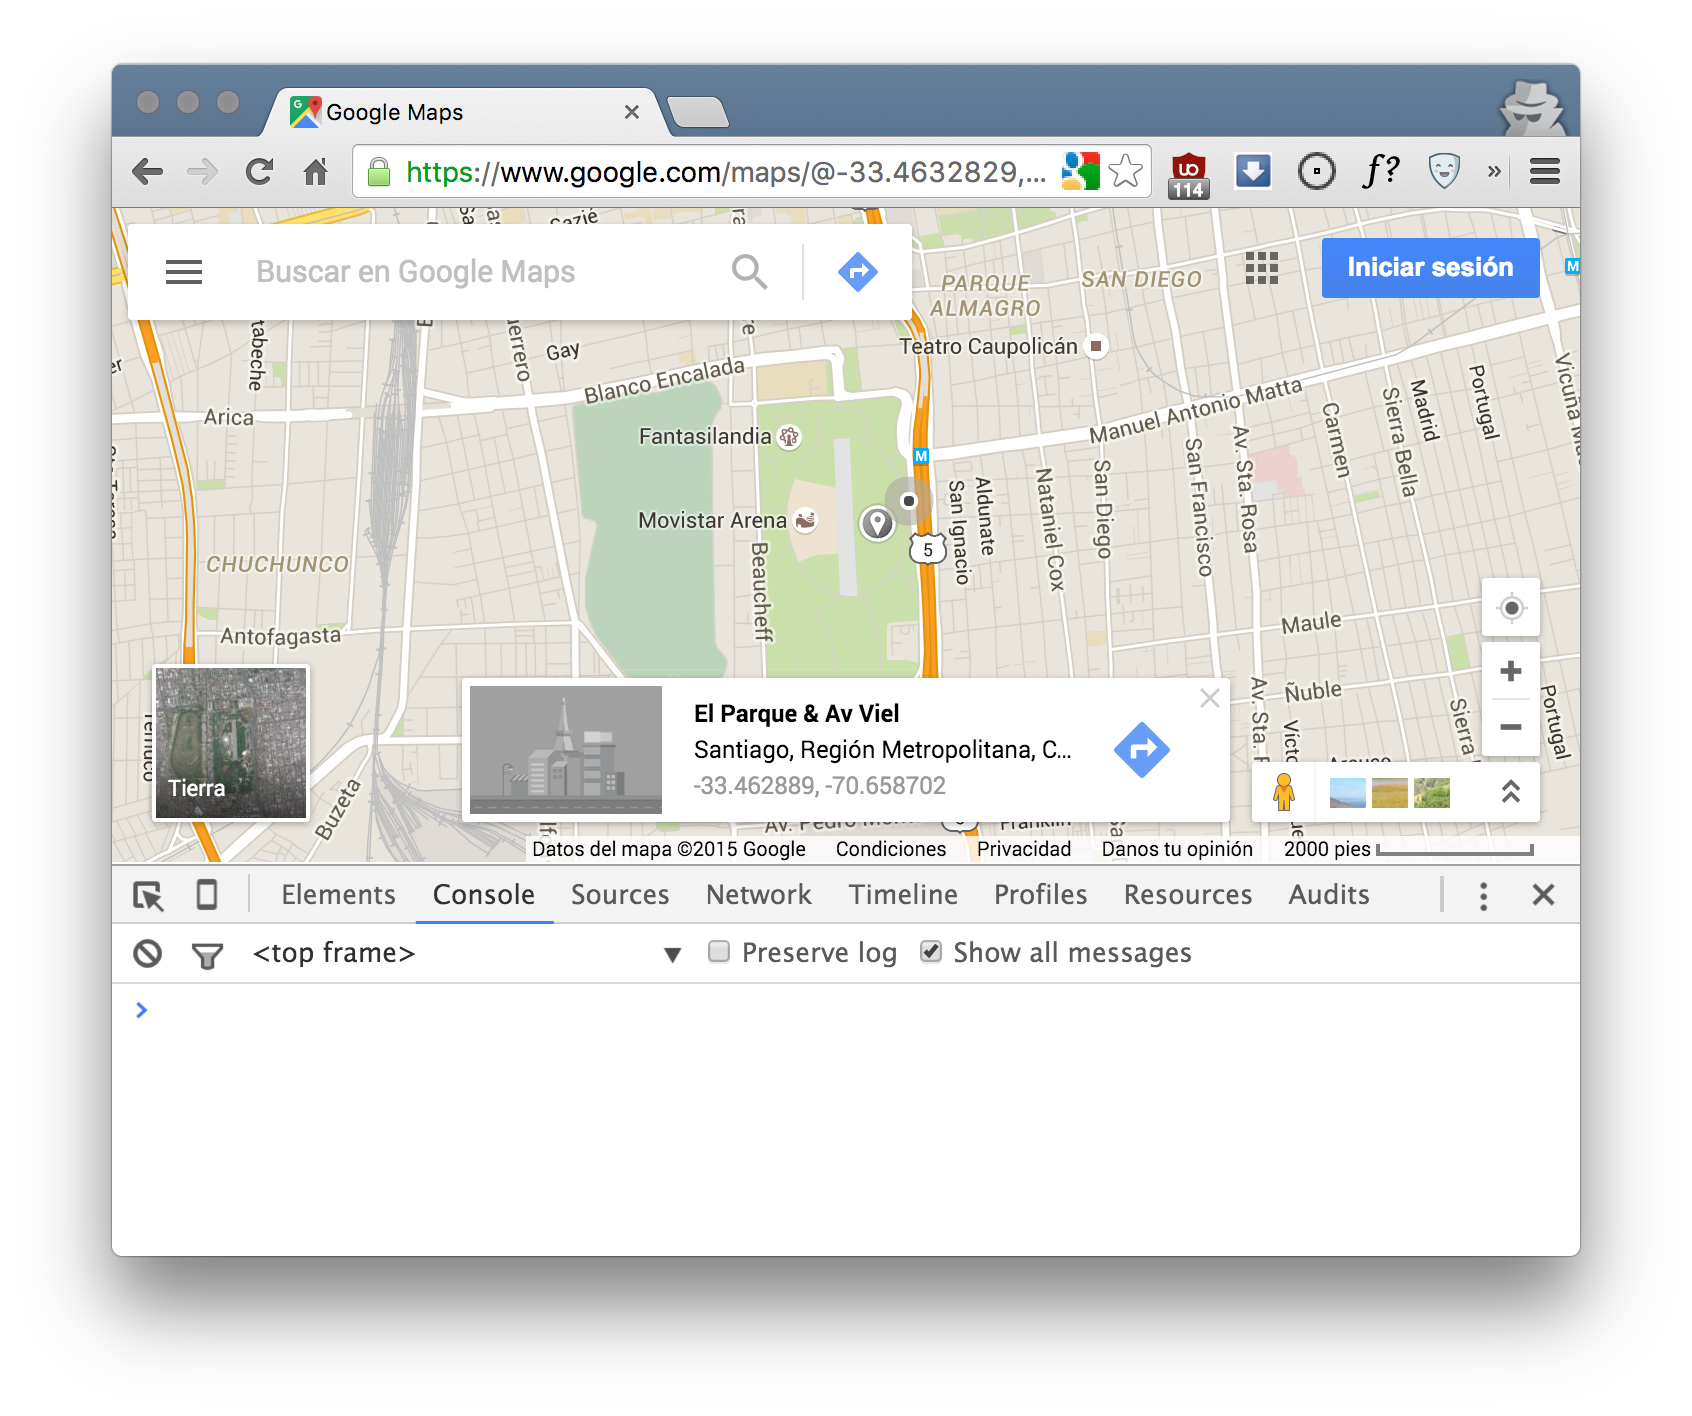 Get GoogleMaps com coordinates to clipboard on click